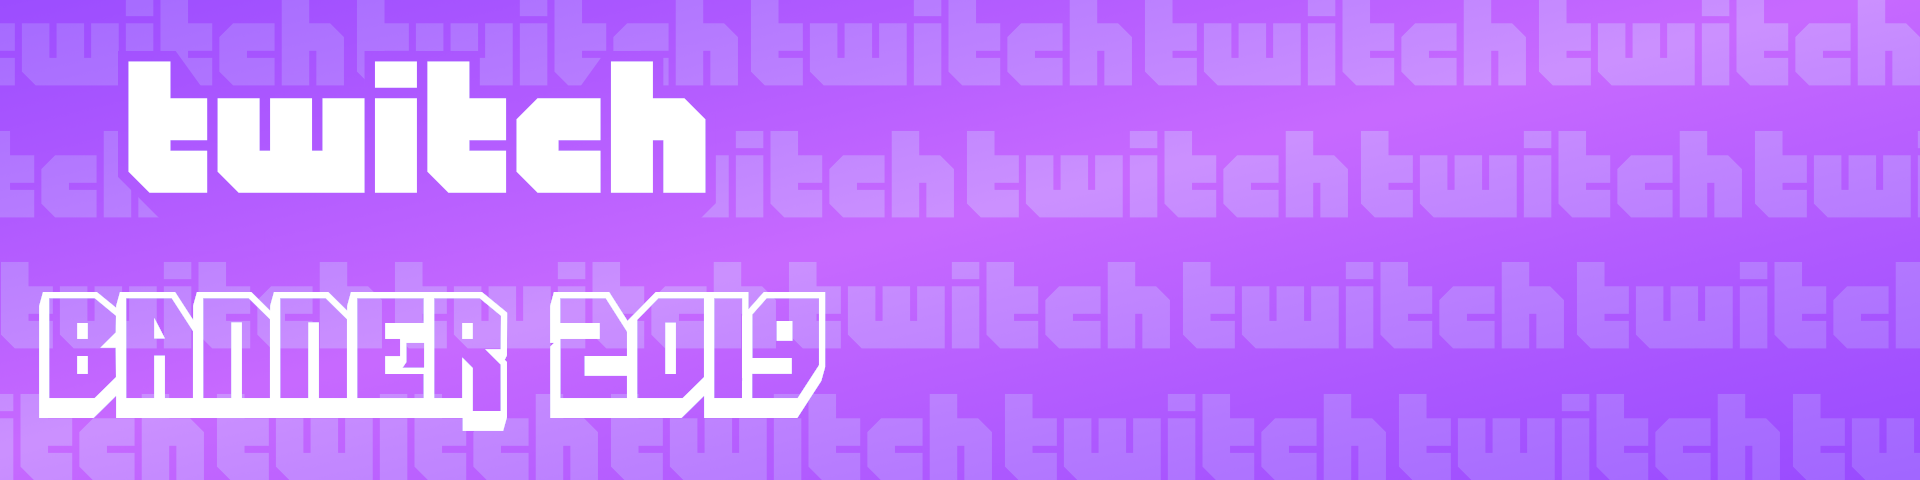 Twitch Banner Template 2019